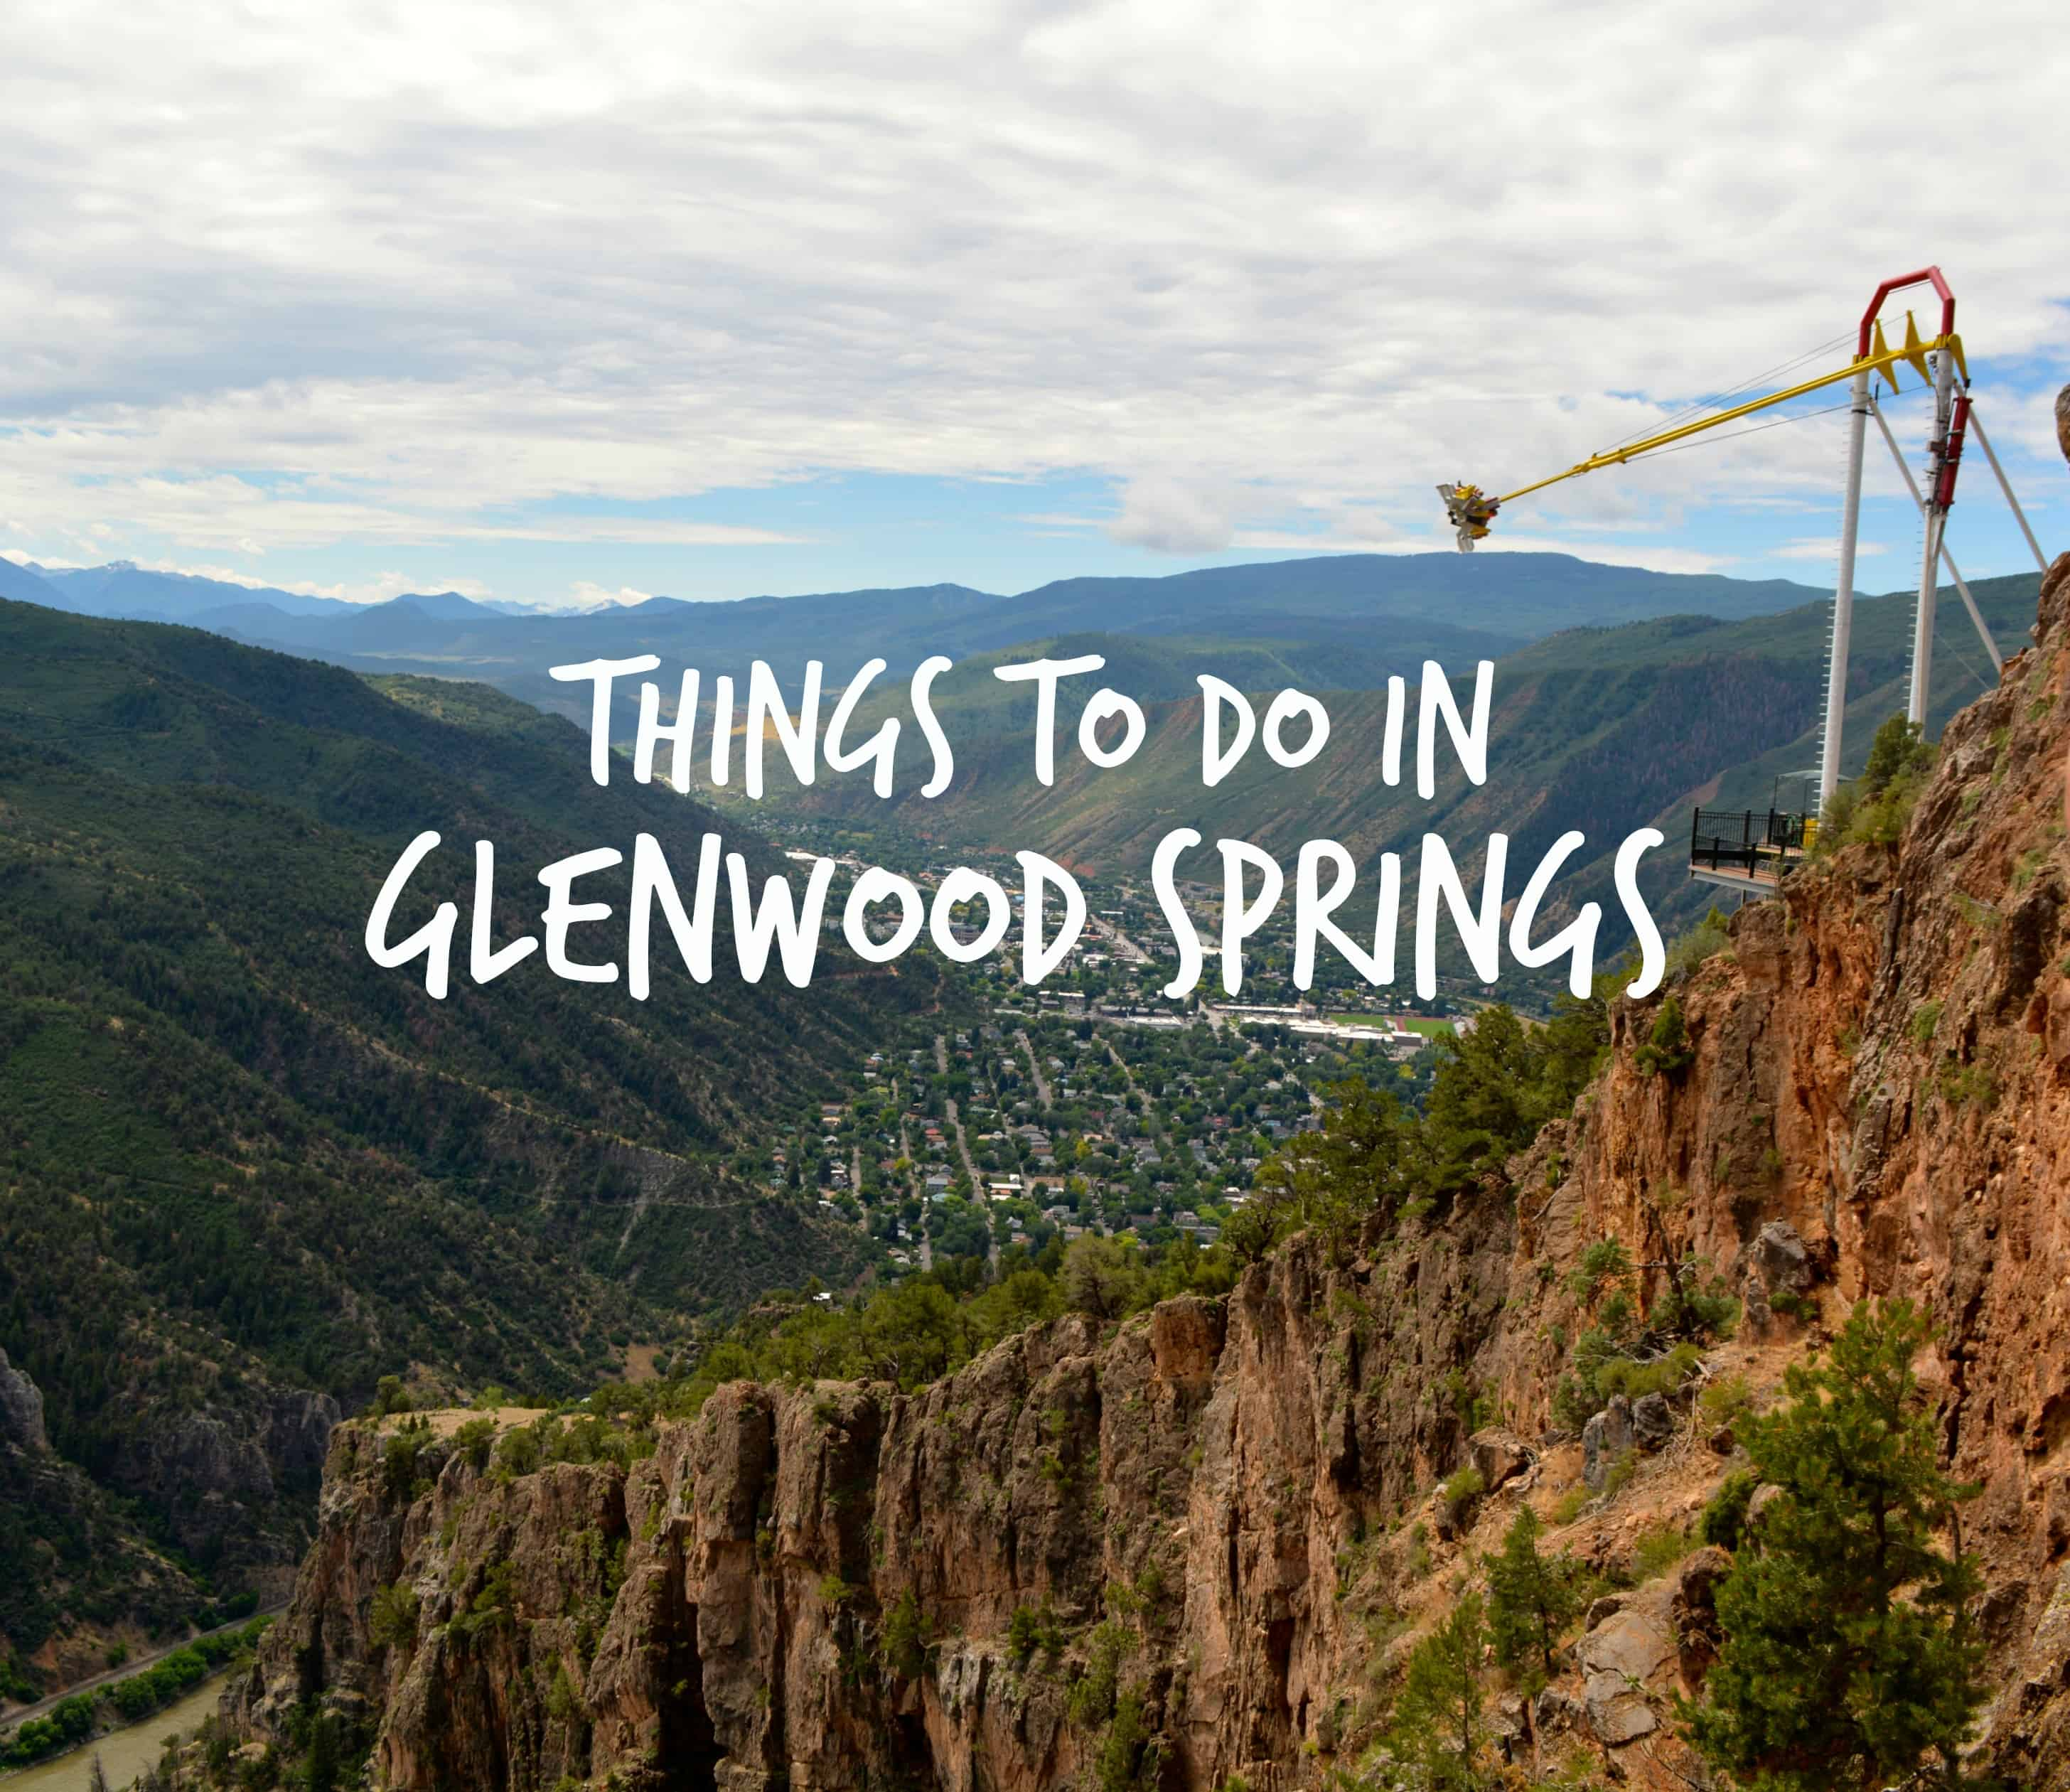 Top Three Things To Do In Glenwood Springs